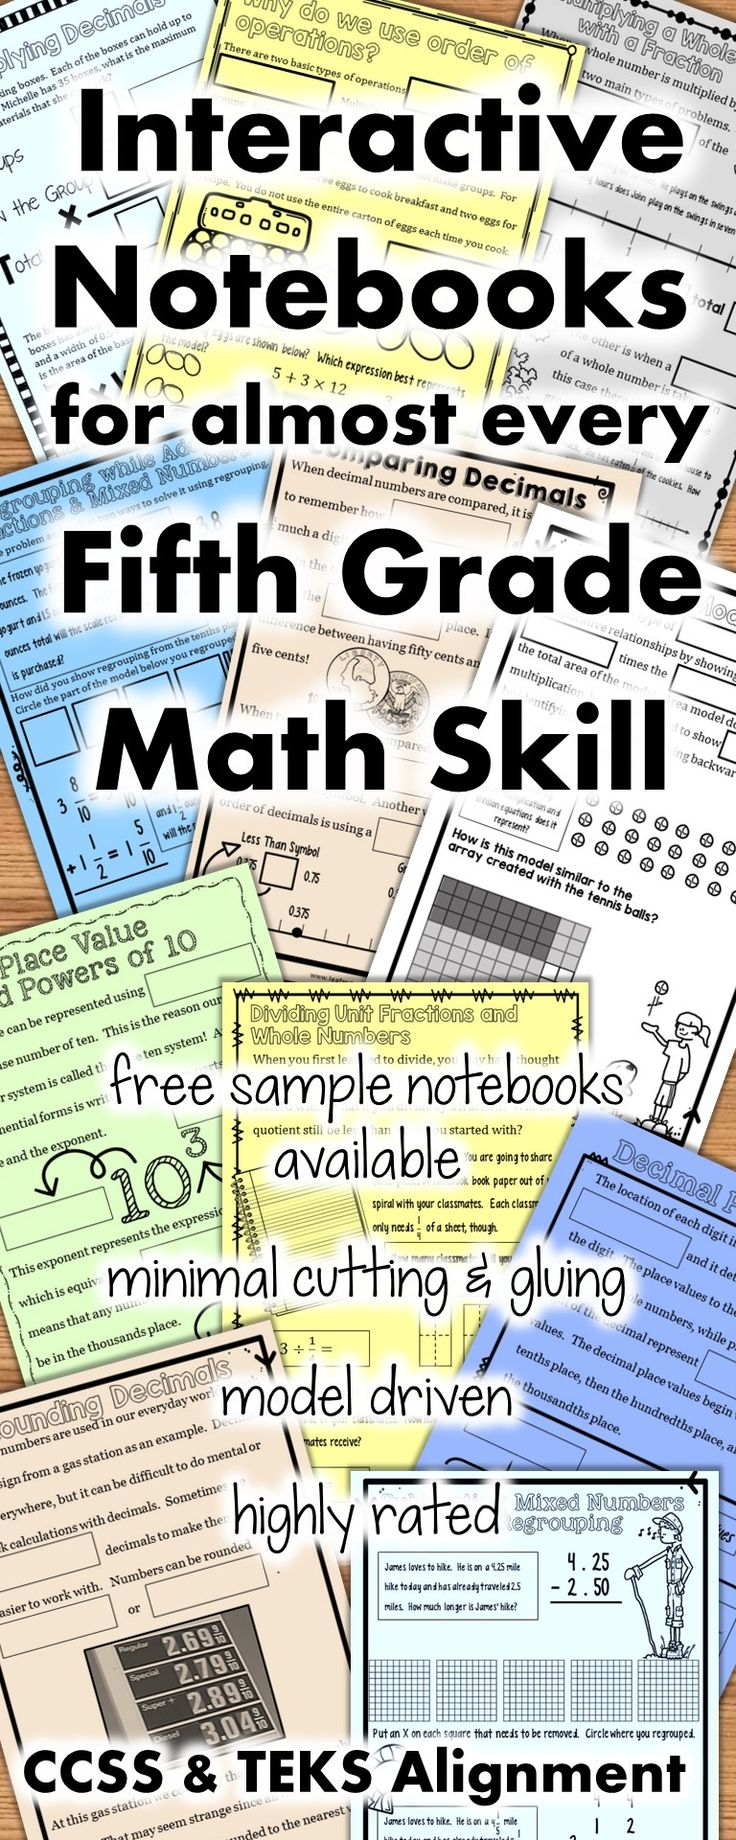 worksheet Place Value Puzzler best 25 place value of decimals ideas on pinterest 5th grade math interactive notebook fractions graphing multiplication division order operations